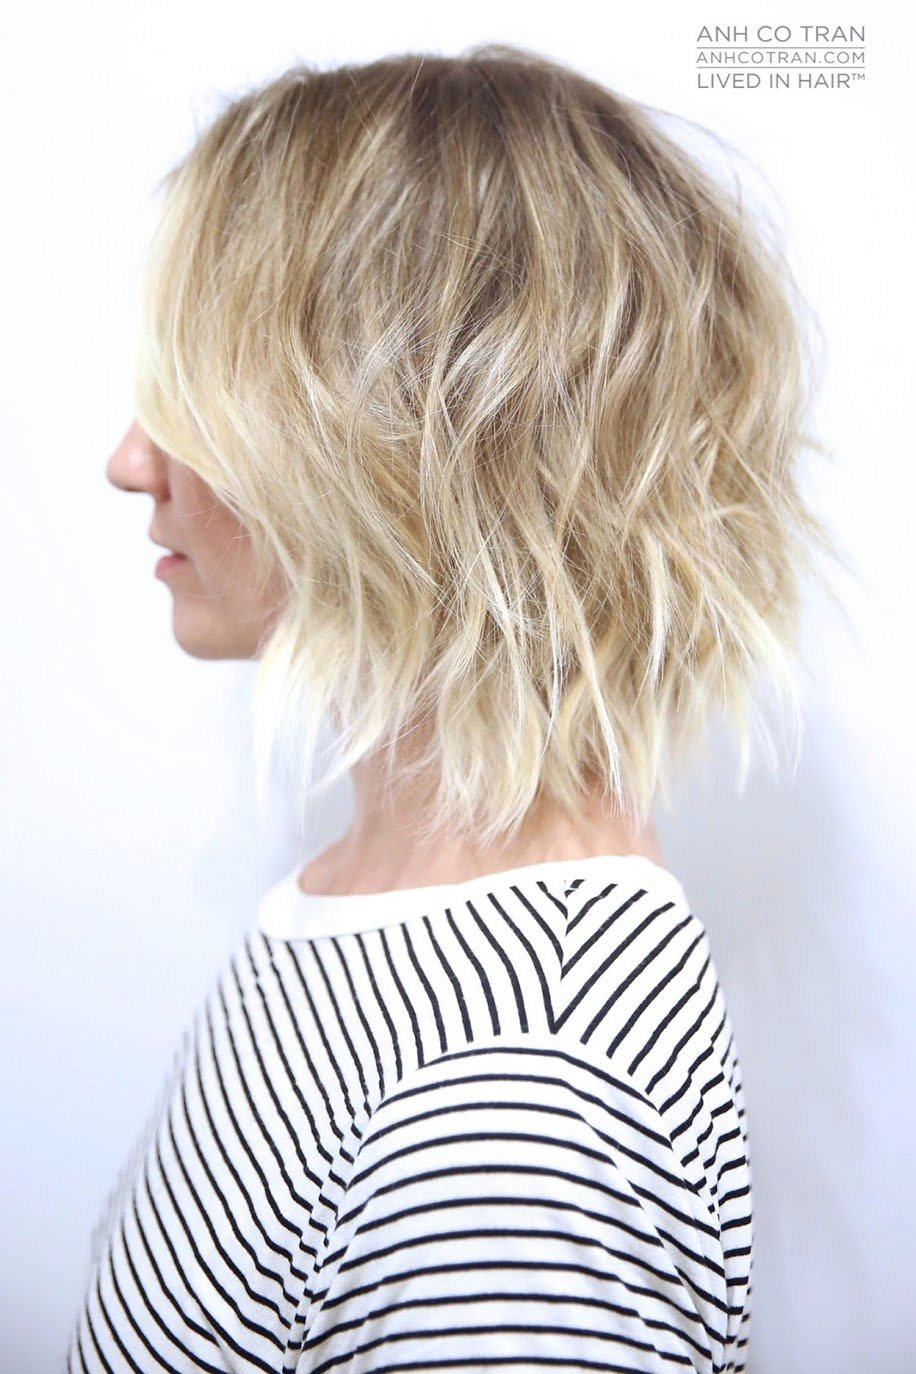 The Best Cute Short Hairstyles To Step Up Your Hair Game Big Time Stylecaster Pictures